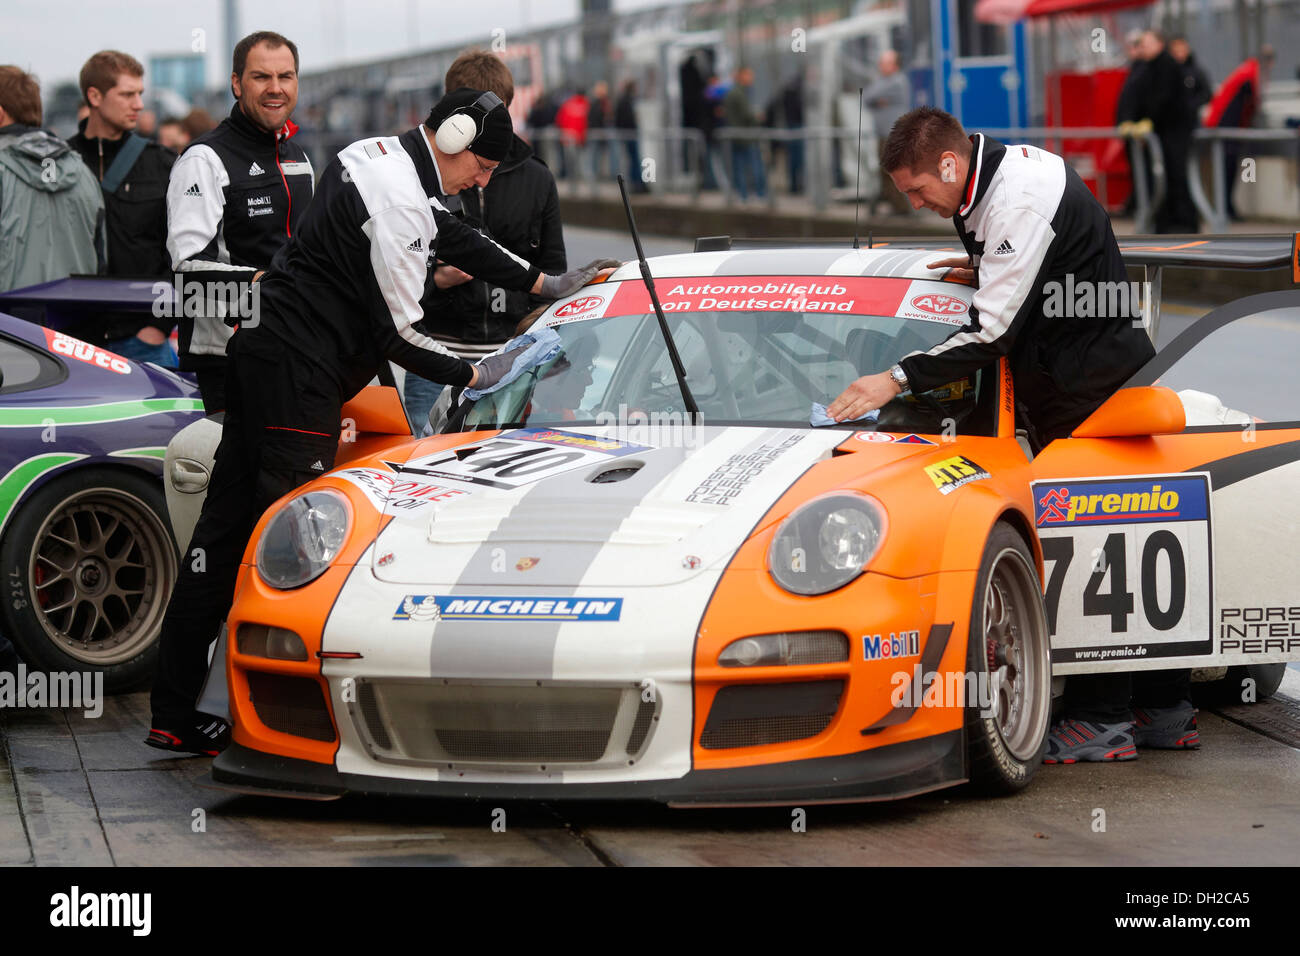 Test-and-tune session at the 'VLN Langstreckenmeisterschaft Nuerburgring' championship, Endurance Racing Championship, the new - Stock Image